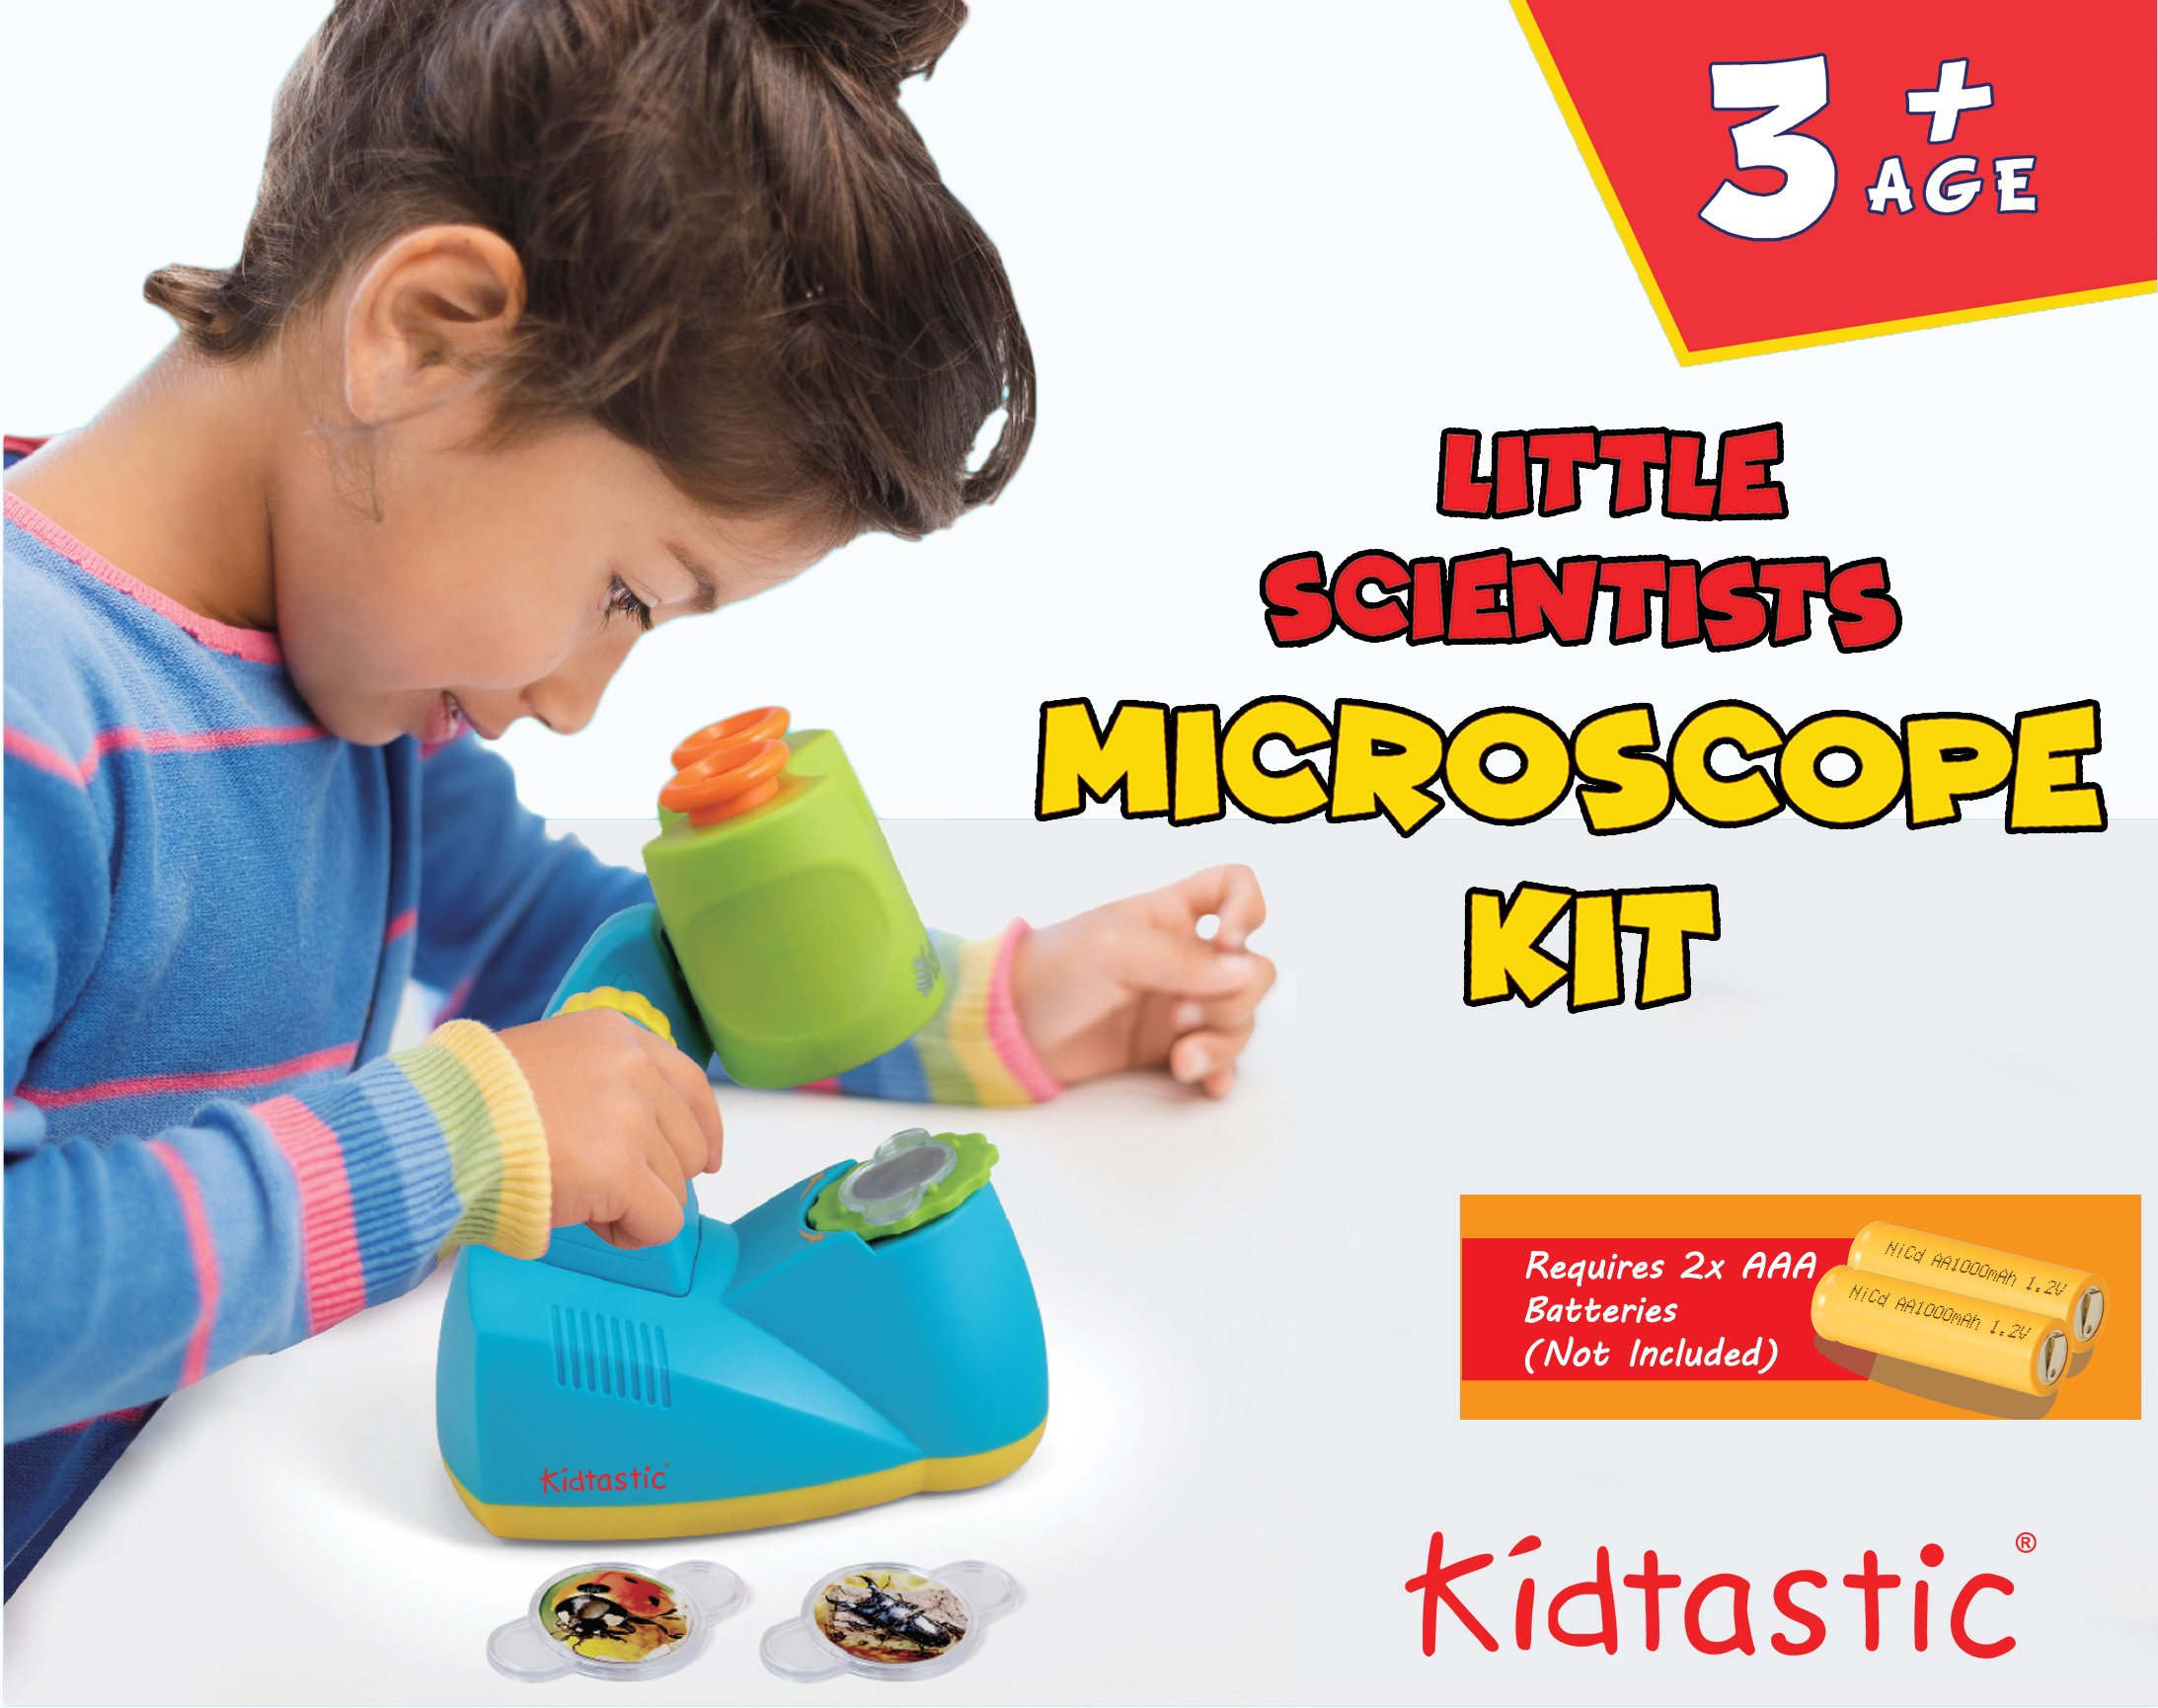 Kidtastic Microscope Science Kit for Kids - Fun Learning Toys for Preschoolers - STEM Toy for 3 Year olds - with 12 Slides Animals & Nature, 8X Zoom, LED Light - for Ages 3, 4, 5, 6 and up by Kidtastic (Image #2)